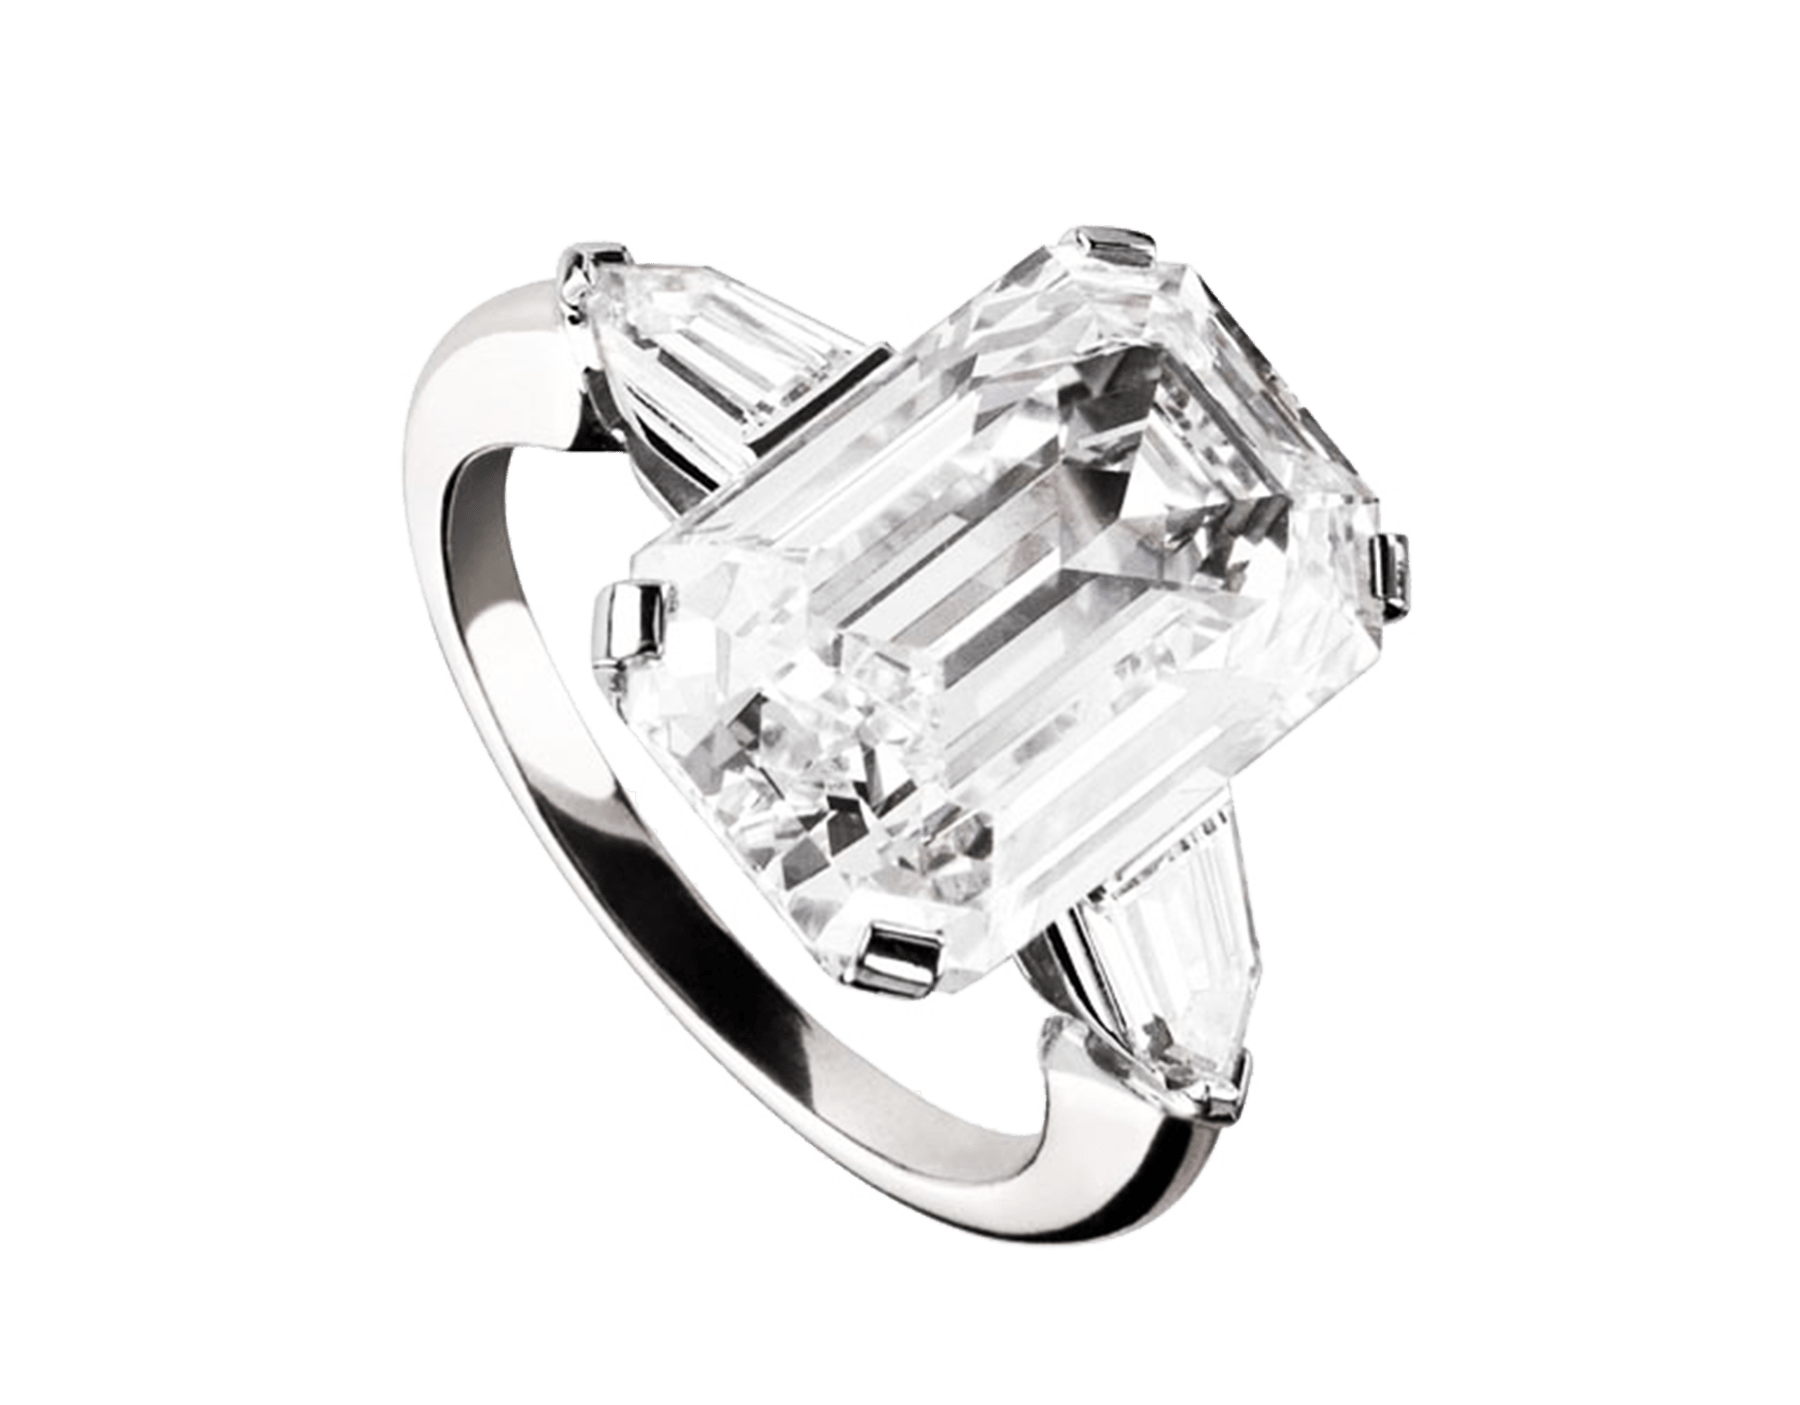 Griffe solitaire ring in platinum with emerald cut diamond and two side diamonds. Available from 1 ct. A classic setting that allows the beauty and the pureness of the solitaire diamond to assert itself 331824 image 1